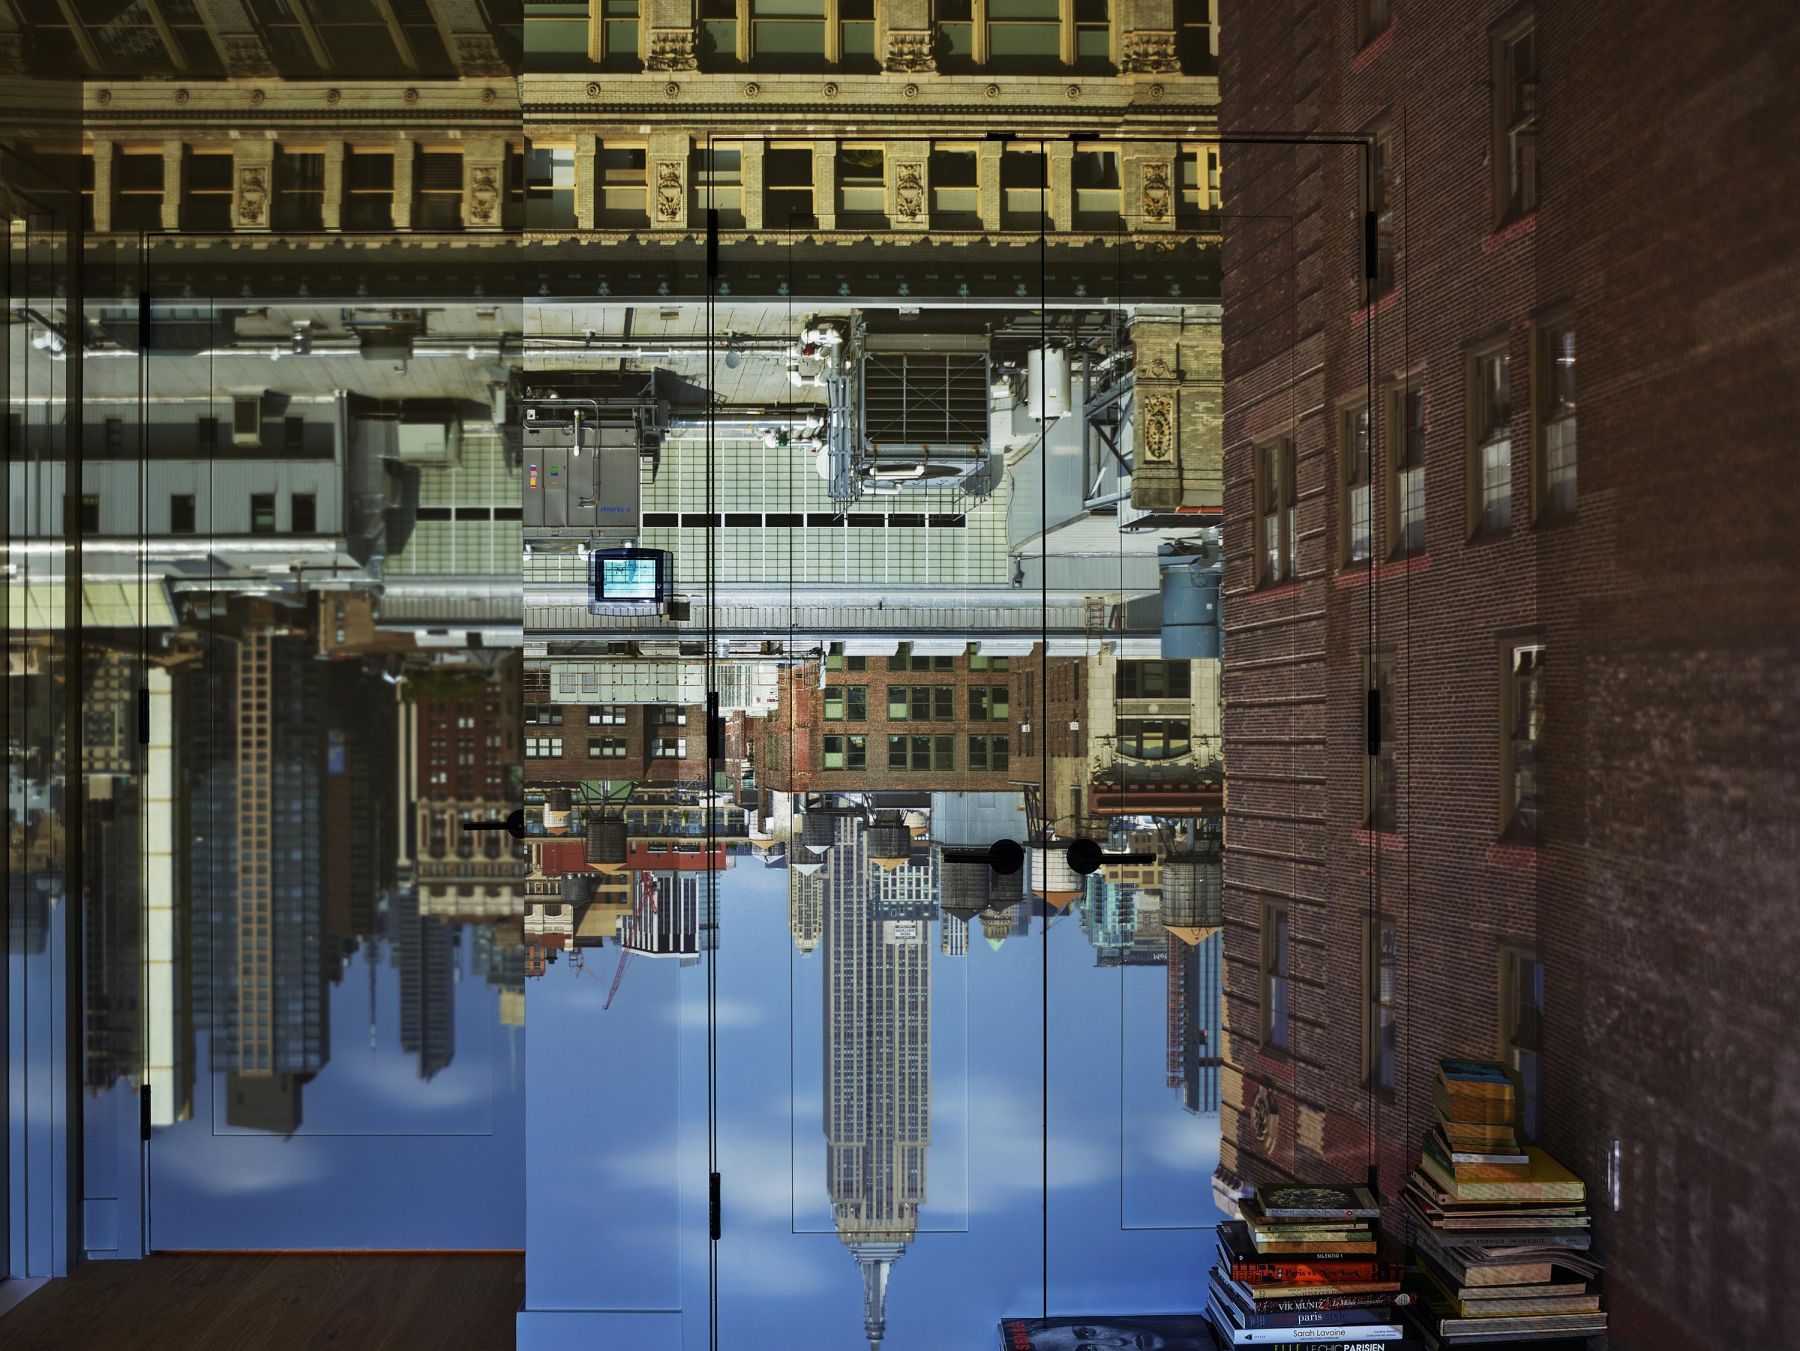 Abelardo Morell, Camera Obscura: View of the Empire State Building in the Afternoon, Looking North, 2018